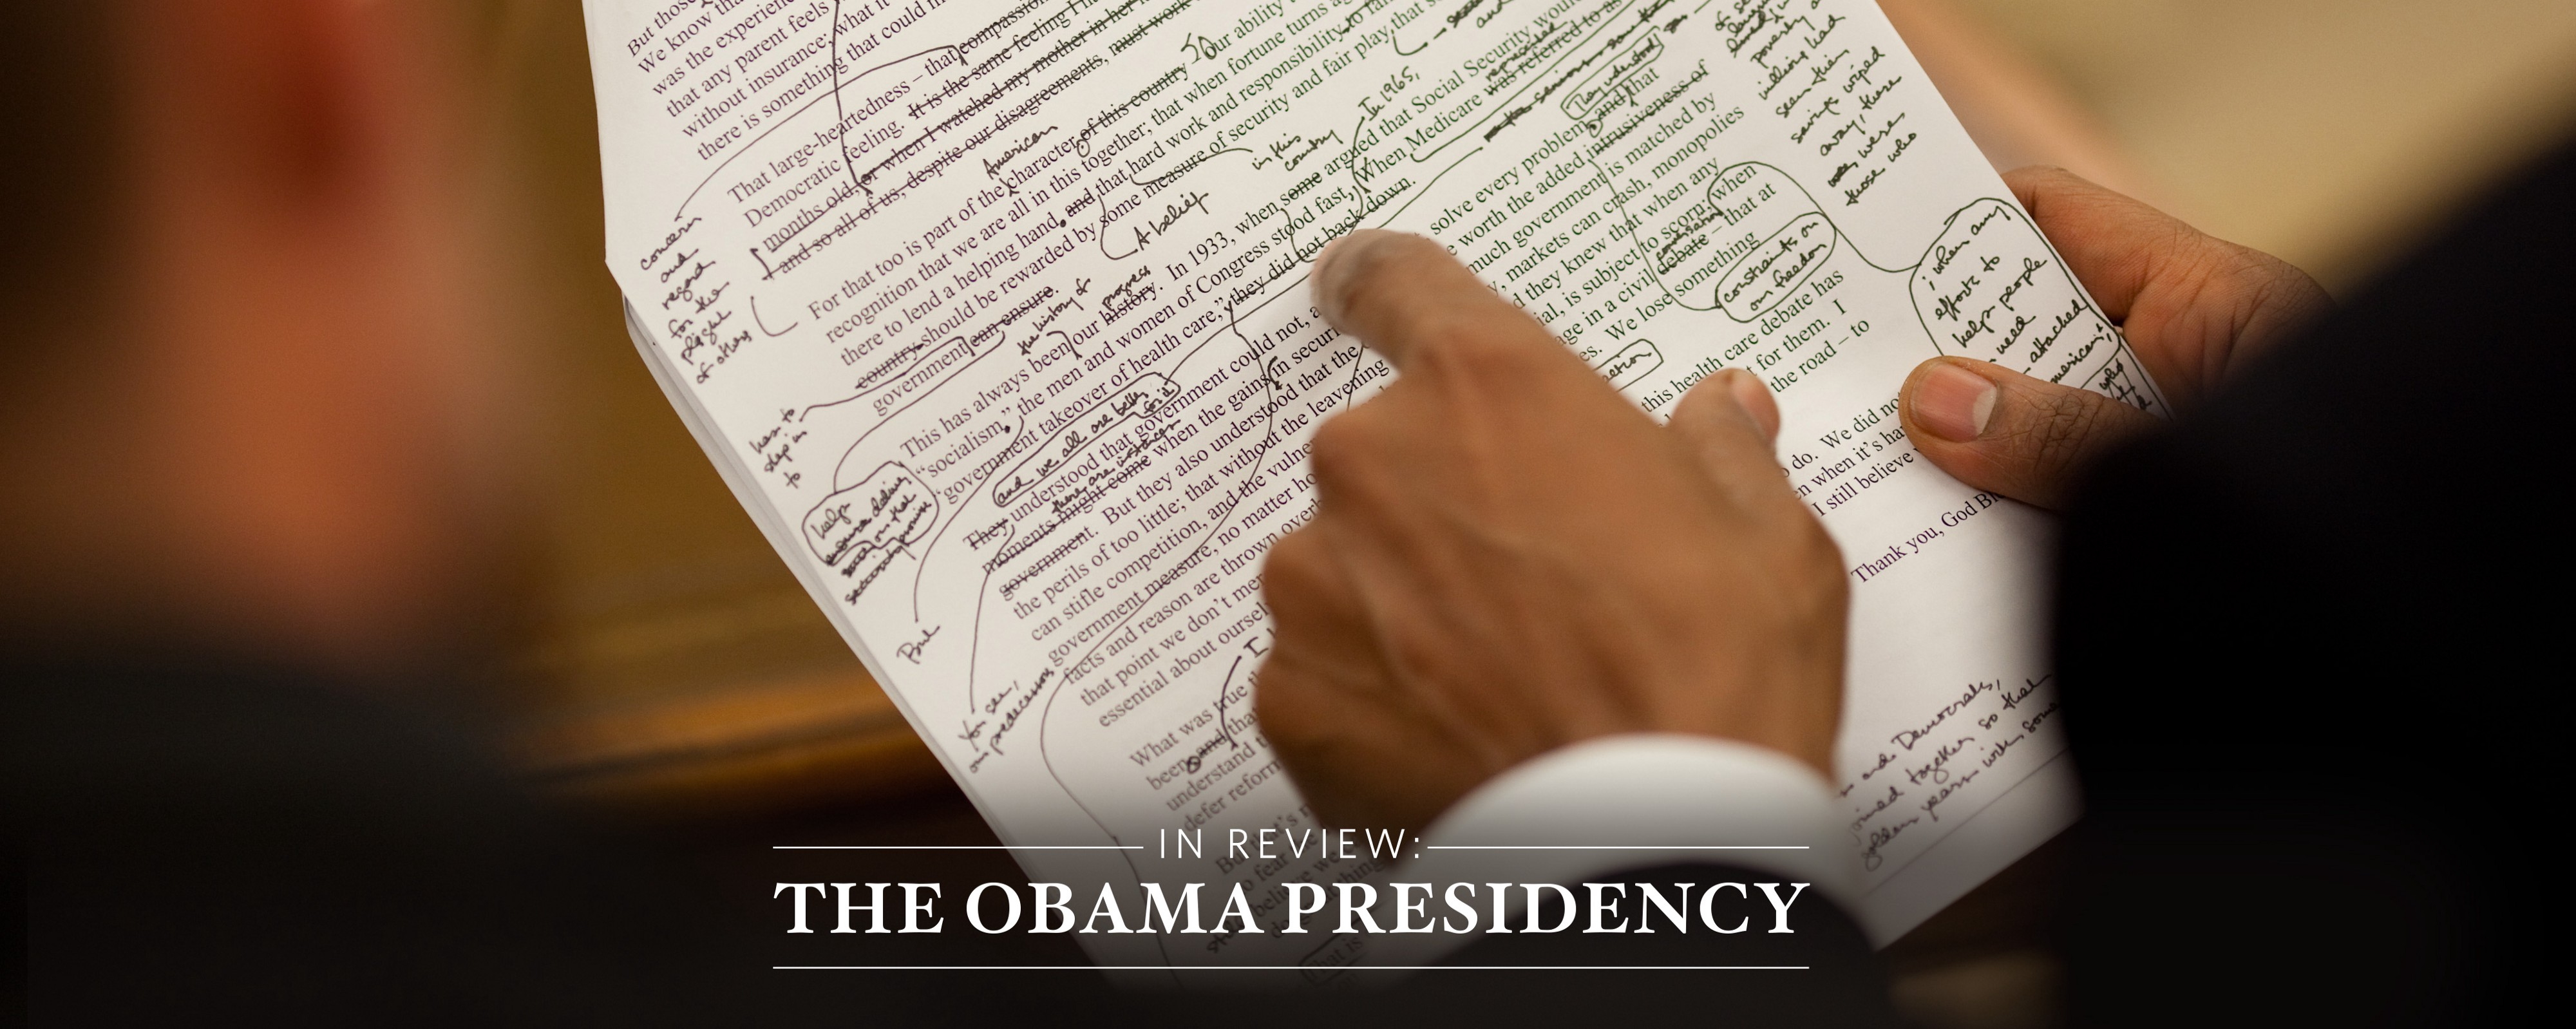 In Review: President Obama's Top Speeches as Chosen by His Speechwriters